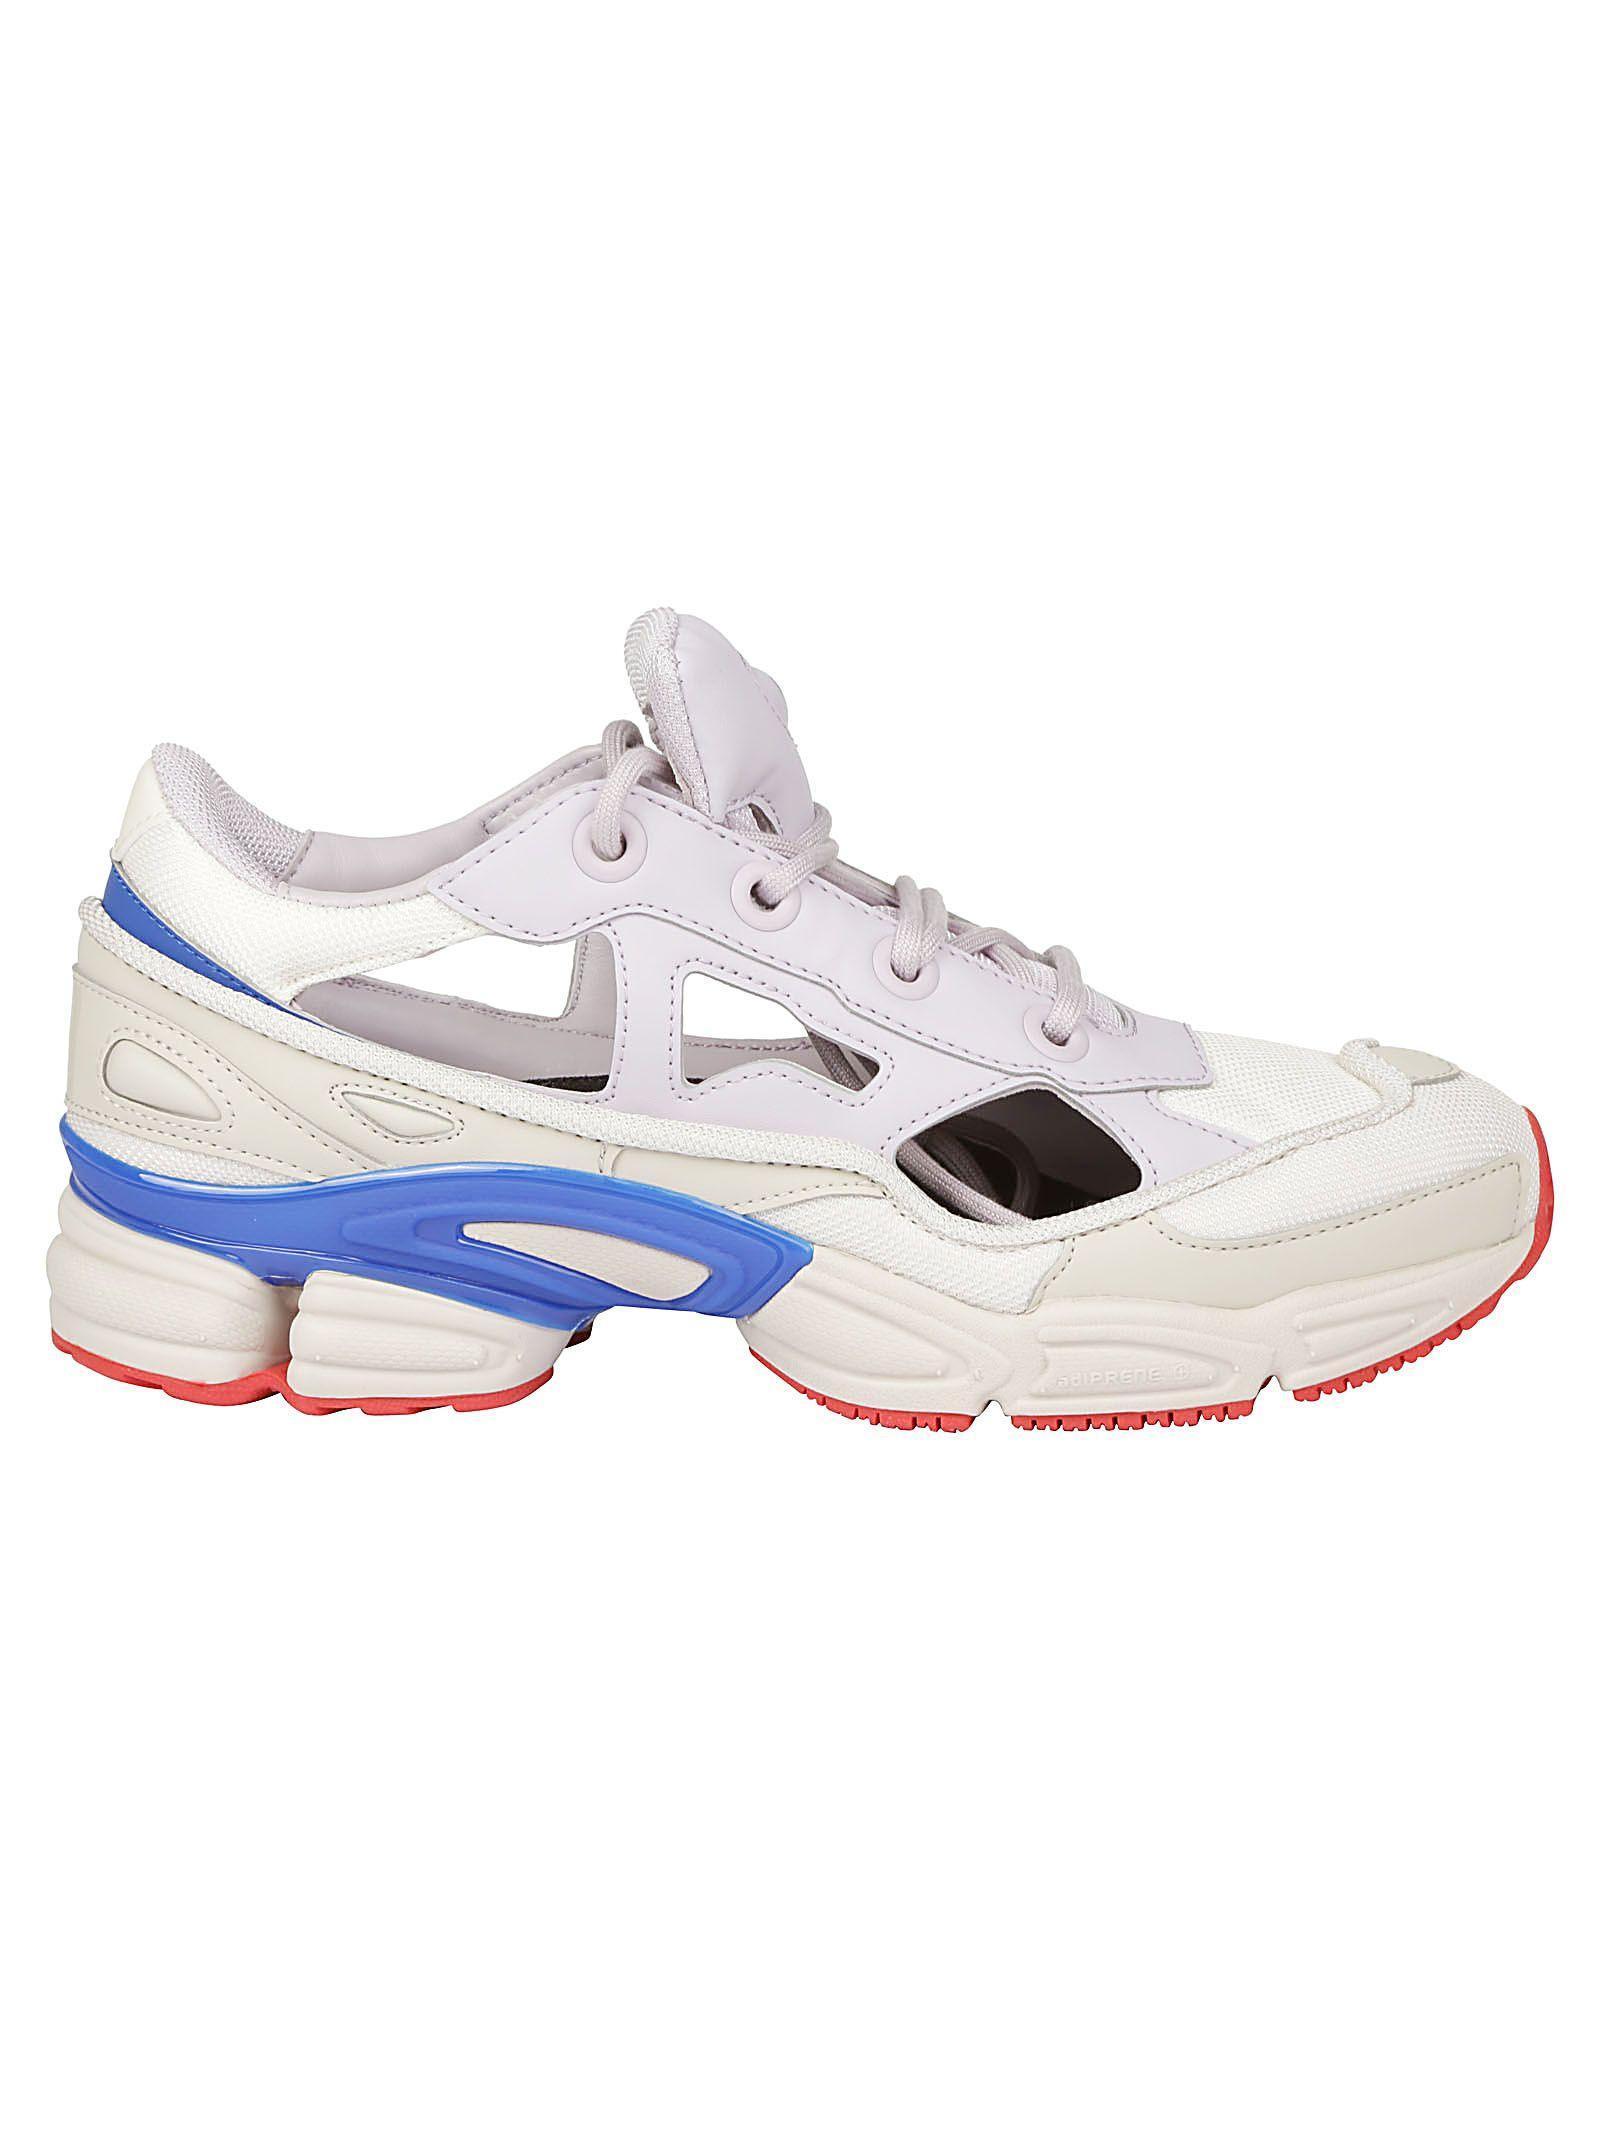 0022628f700d Adidas By Raf Simons Adidas X Raf Simons Replicant Ozweego Usa Panelled  Trainers In White